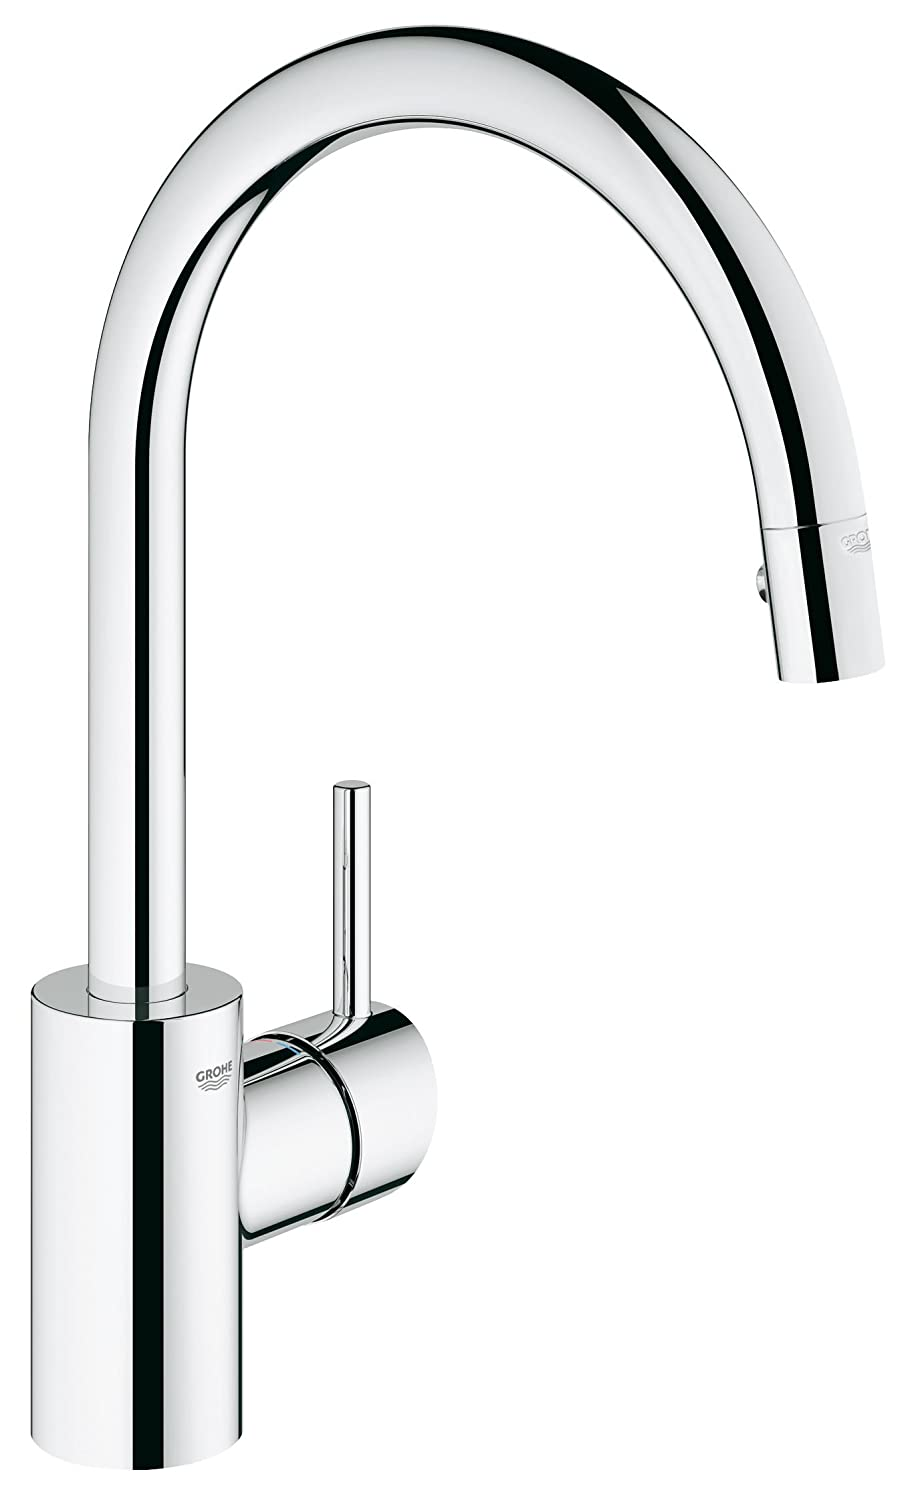 Grohe concetto best pull down kitchen faucet